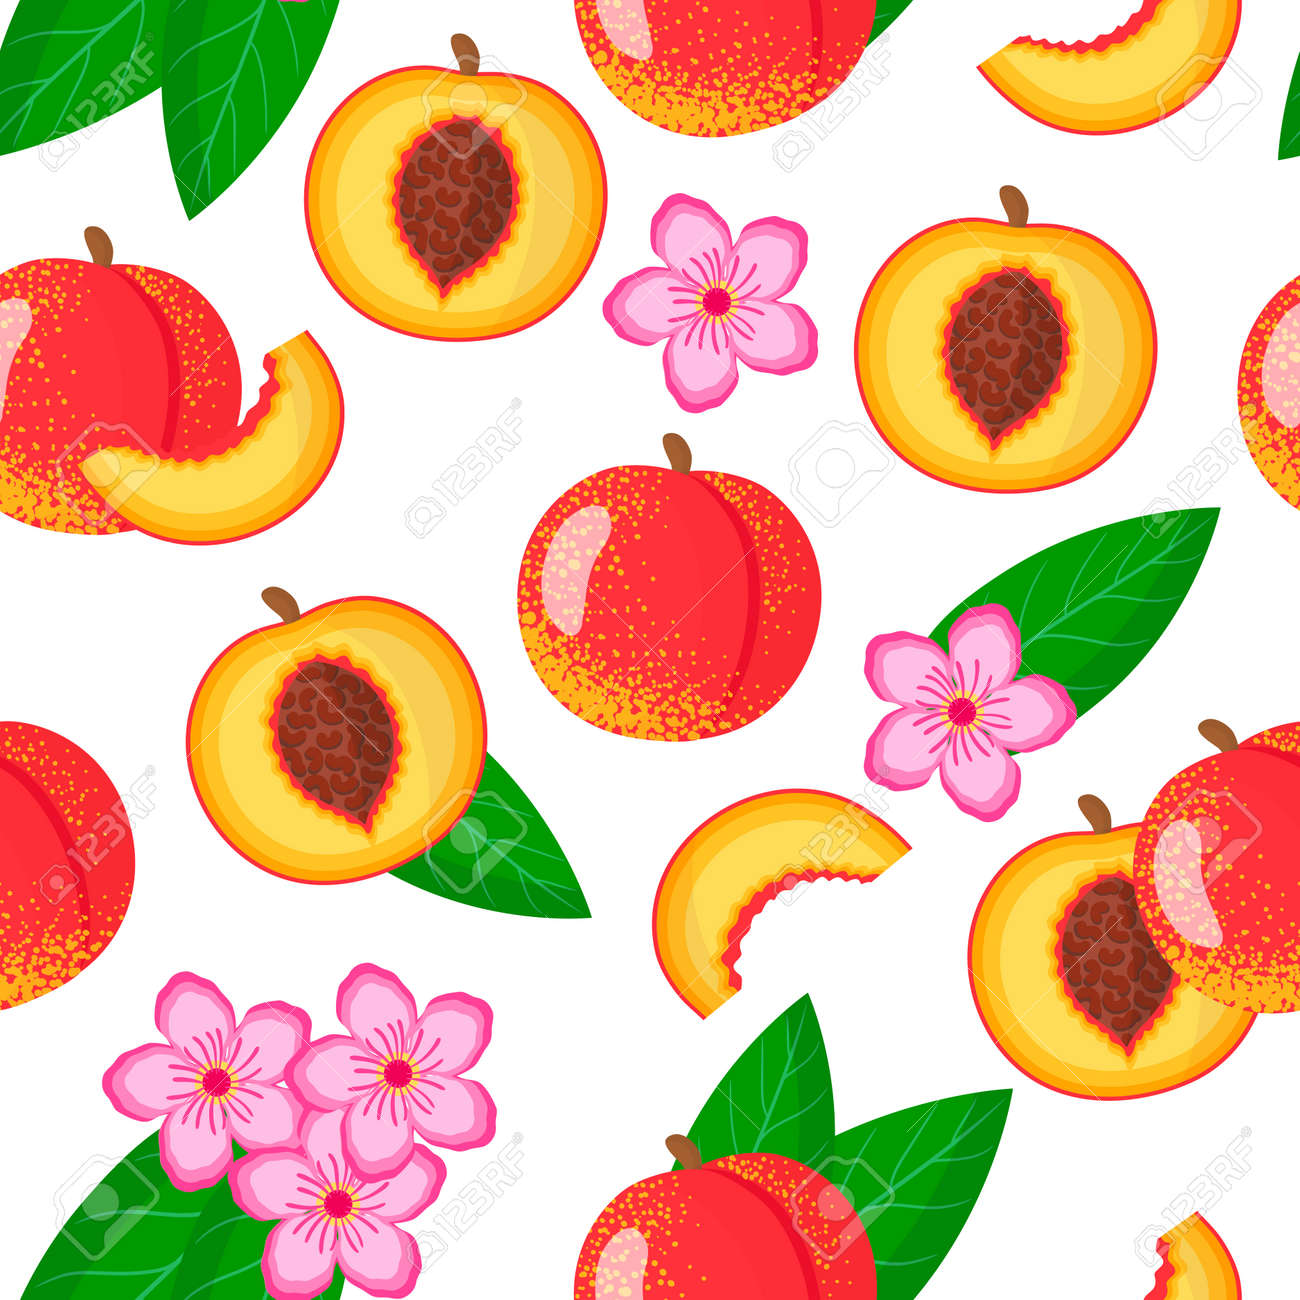 Vector cartoon seamless pattern with Prunus persica nucipersica or Nectarine exotic fruits, flowers and leafs on white background for web, print, cloth texture or wallpaper - 156023274